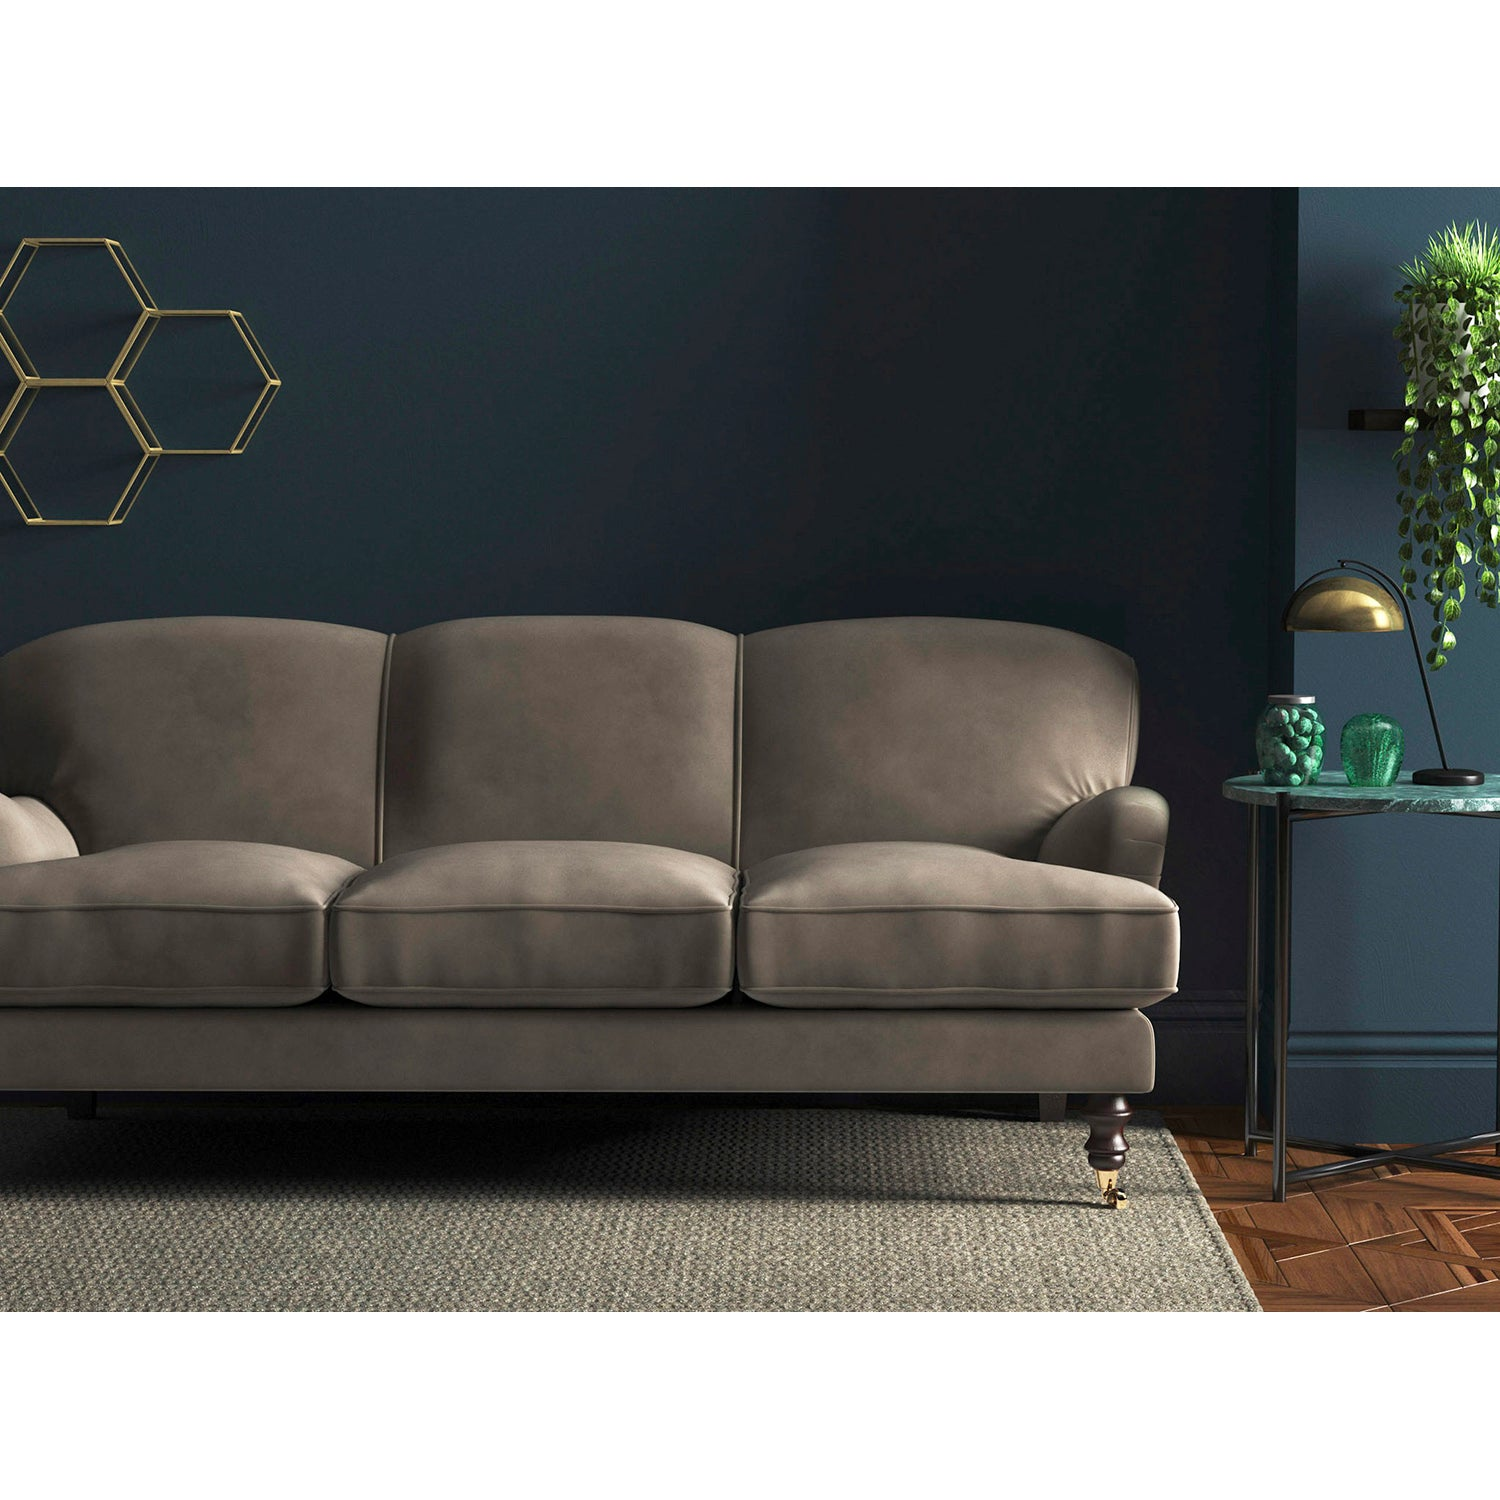 Sofa in a luxury lilac toned grey velvet upholstery fabric with a stain resistant finish